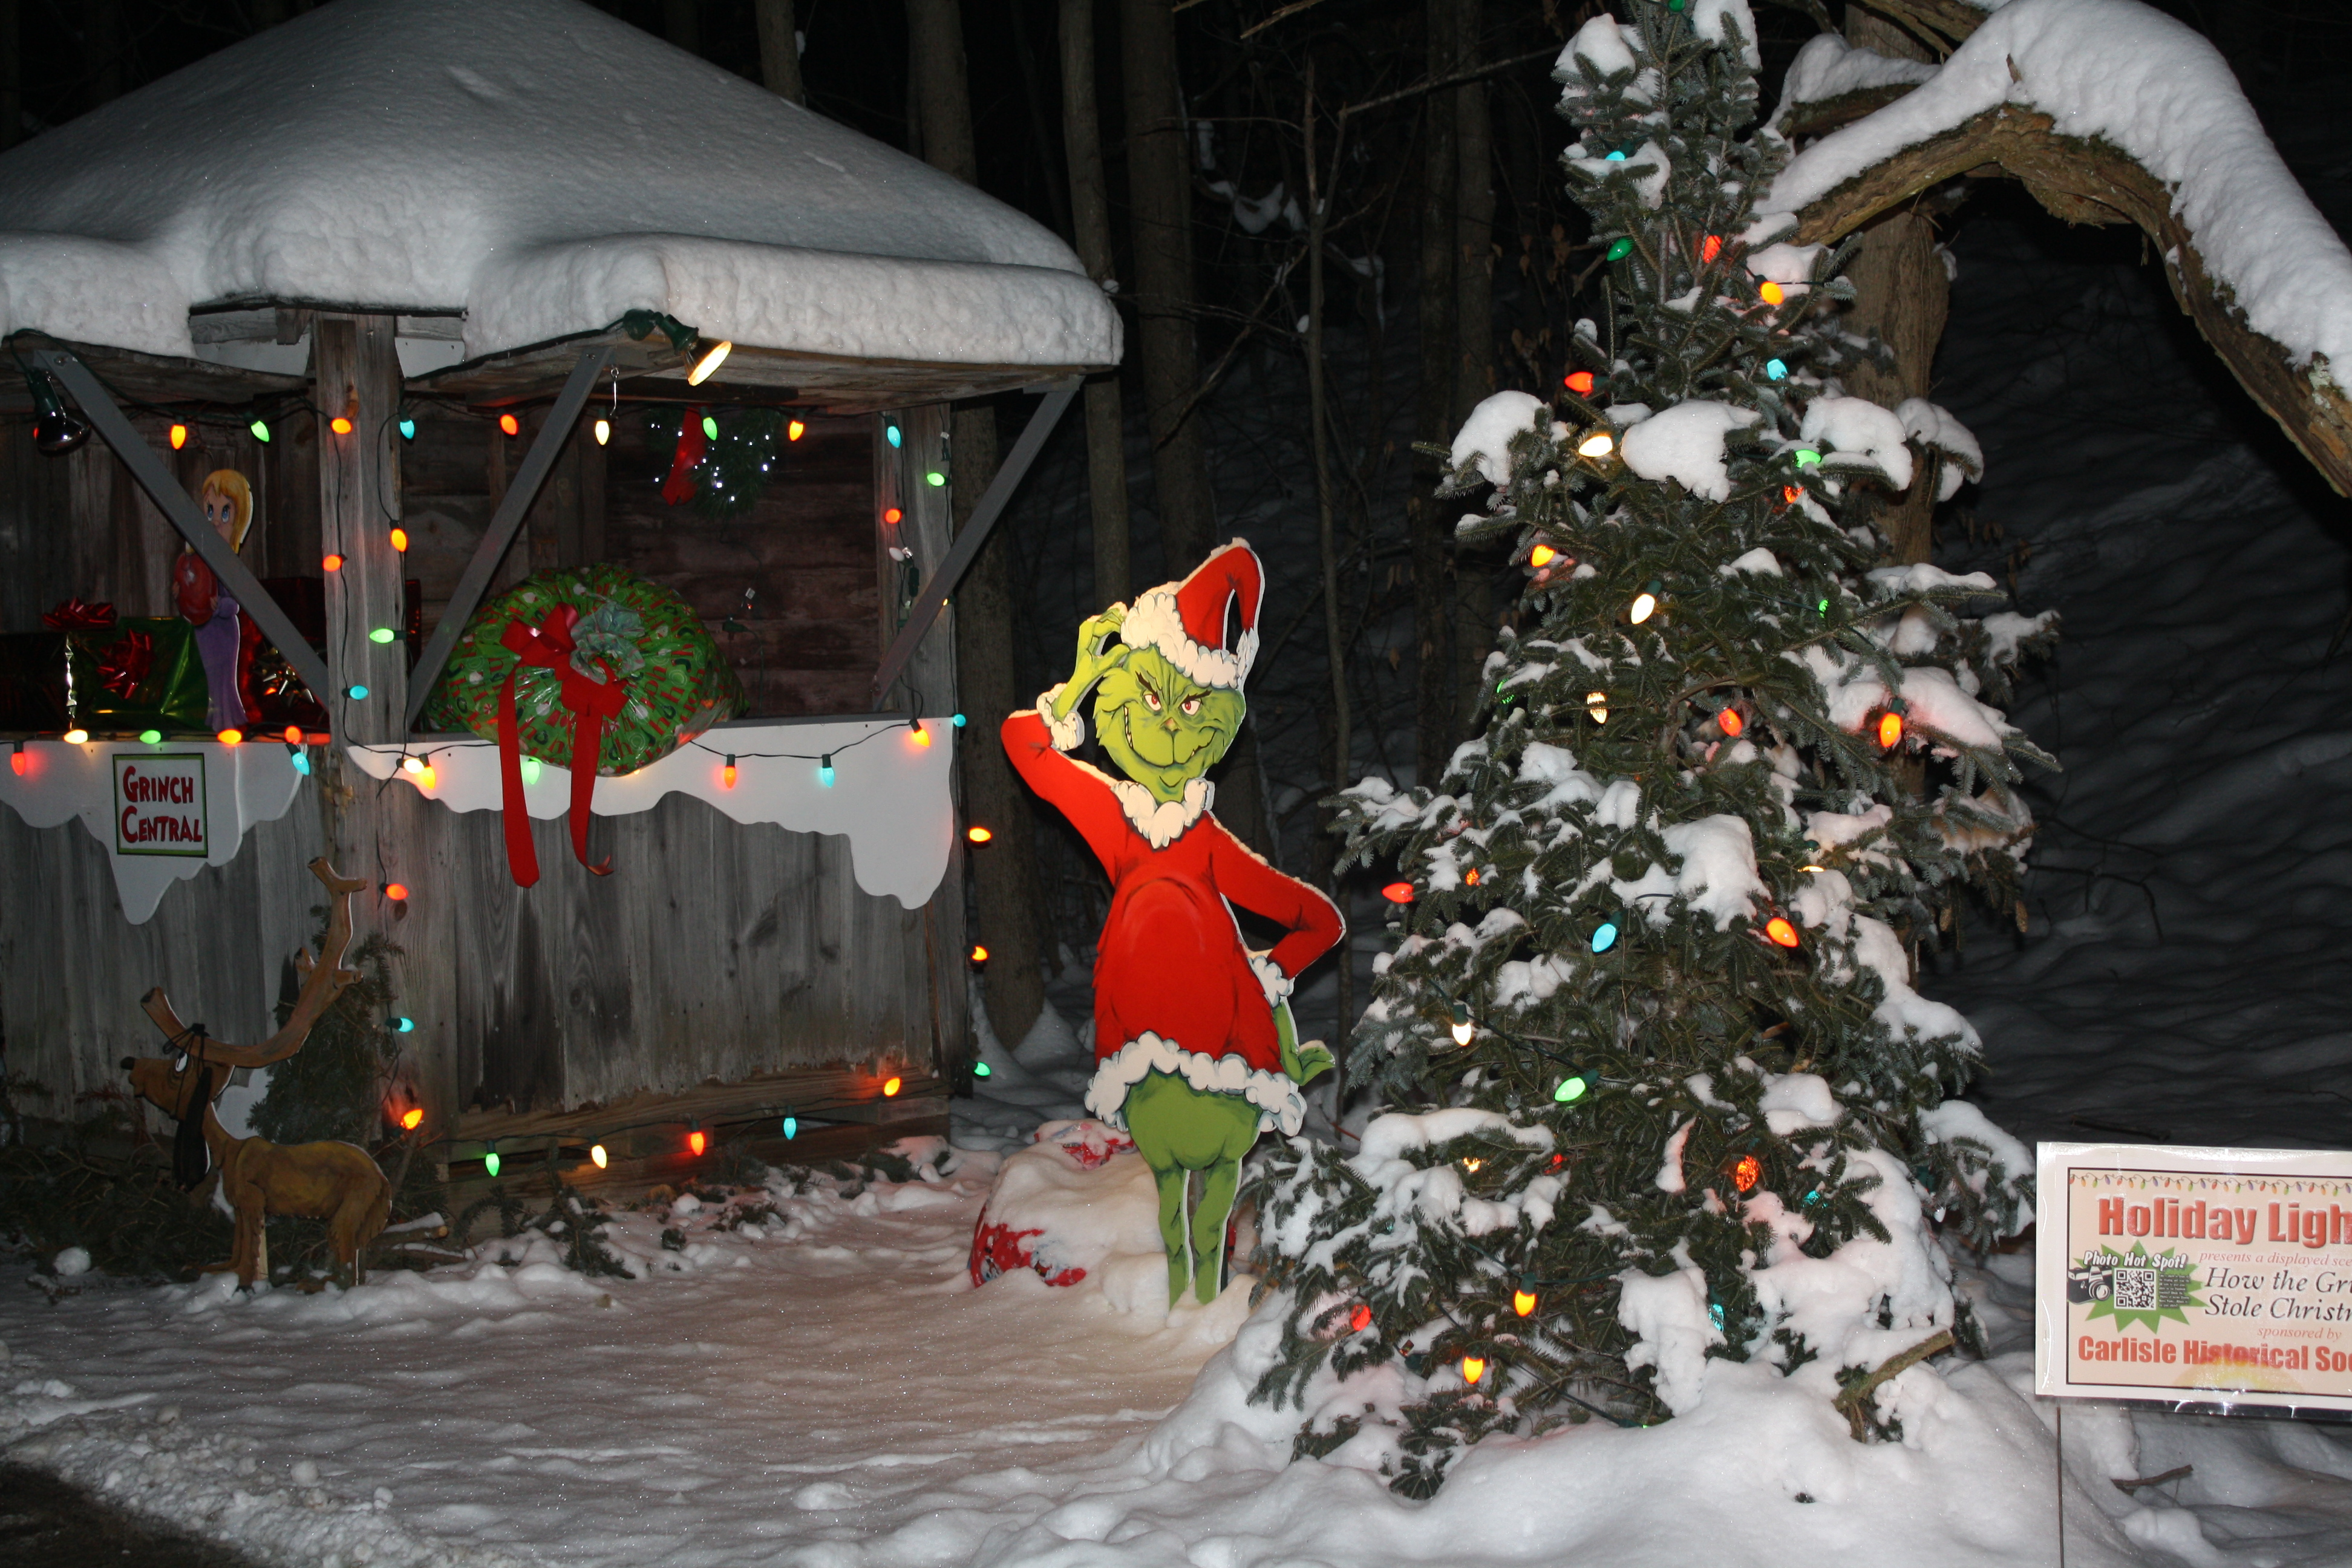 Grinch stealing lights christmas decorations - Holiday Lights 2012 038